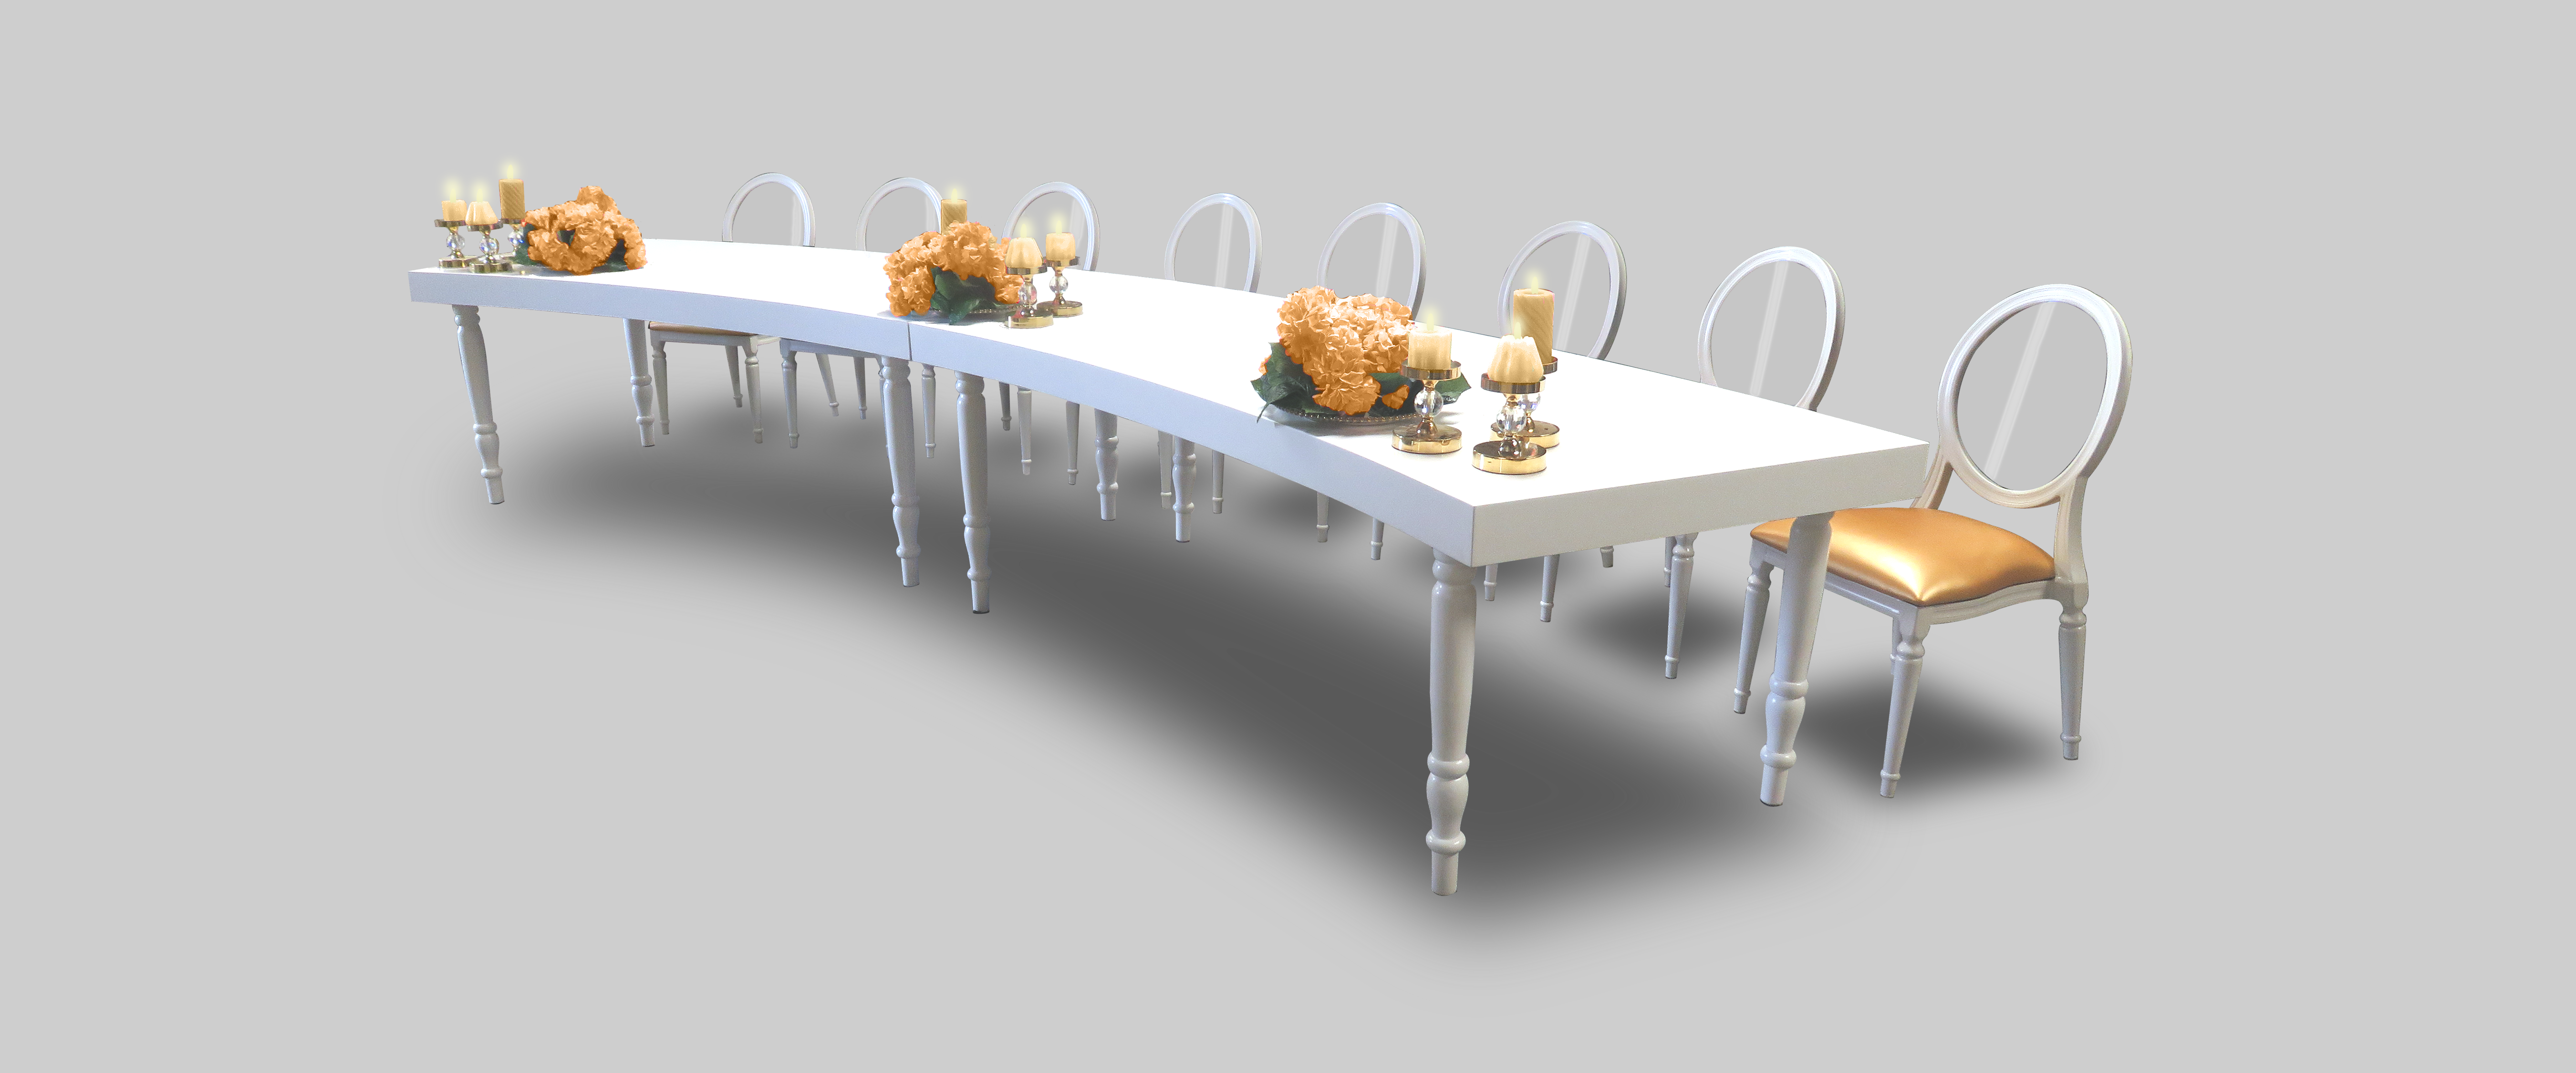 Rent Or Buy Avalon Curved White Dining Table Event  : aug2017 avalon curved white dining table setup 2 dining tables from areeka.ae size 5400 x 2250 png 3170kB